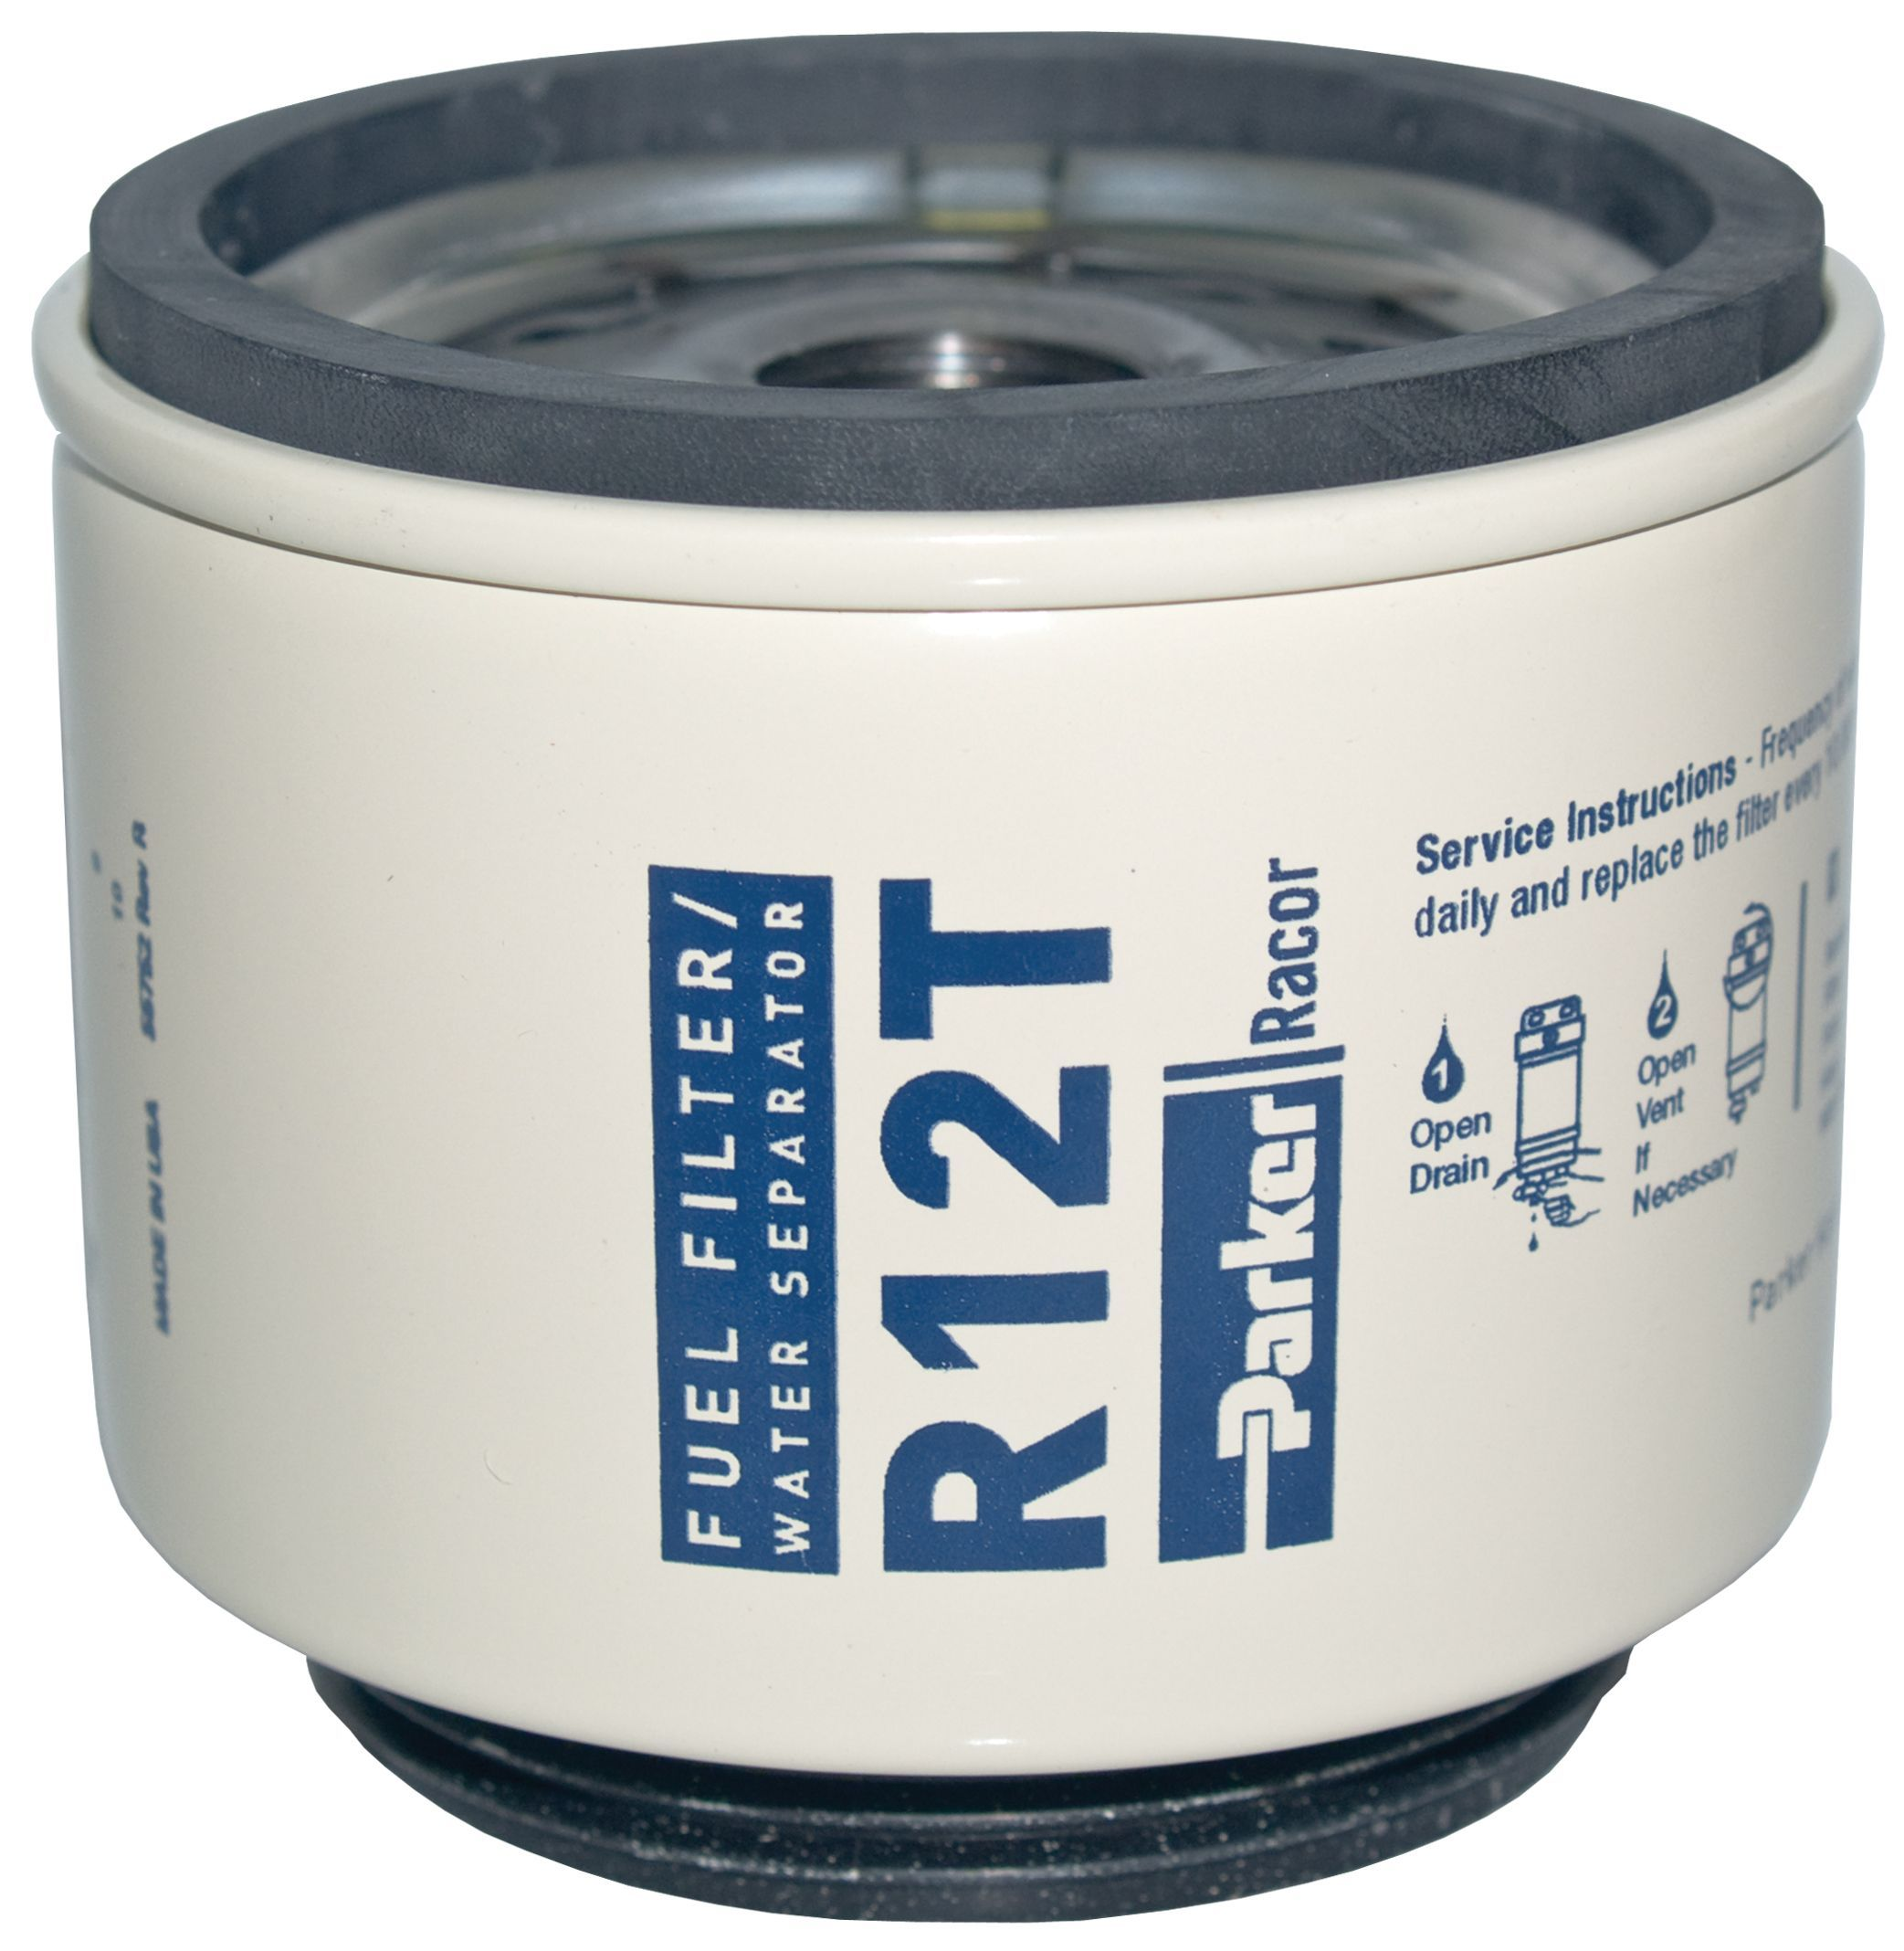 Racor R12t 10 Micron Fuel Filter Water Separator